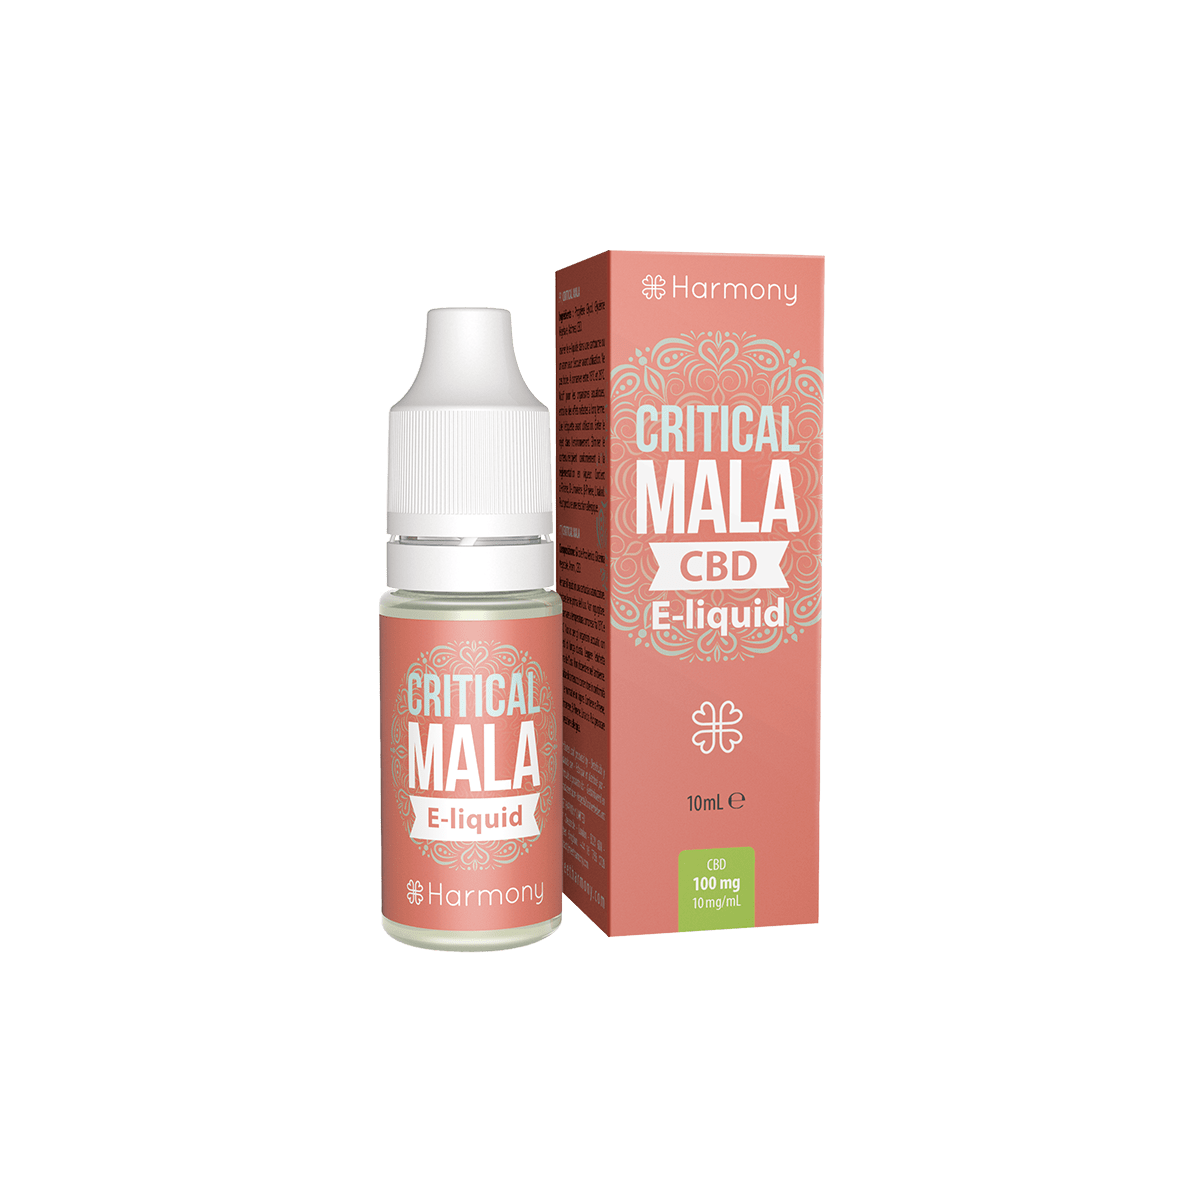 CBD Liquid | HARMONY Critical Mala | Menge 10 ml - 600 mg